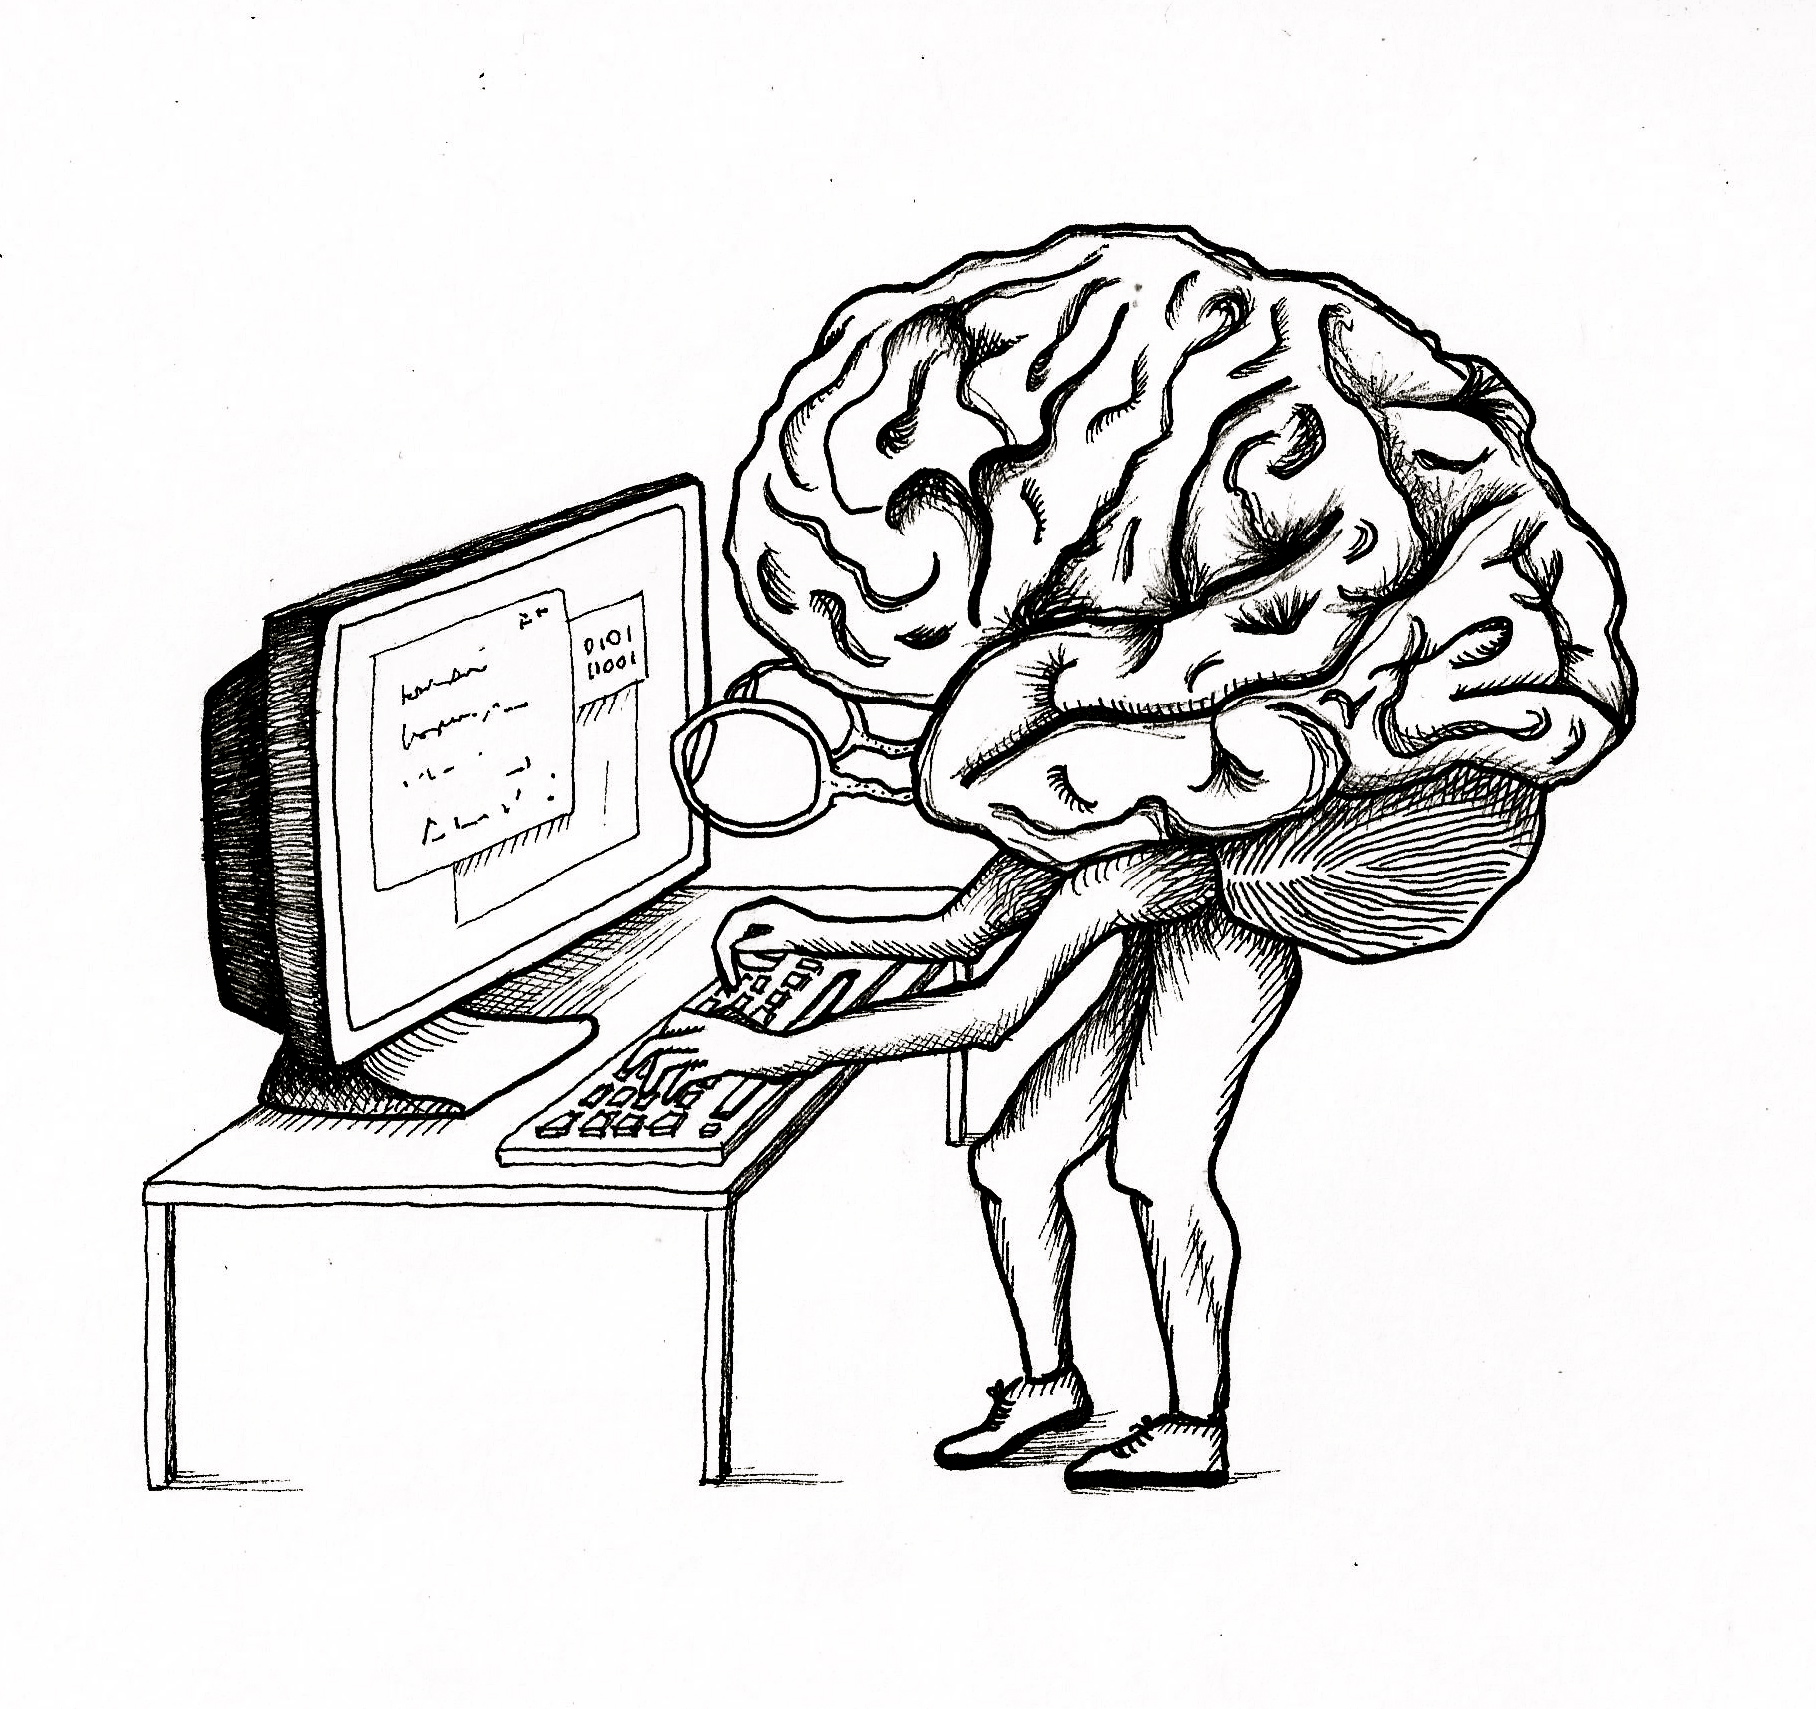 1816x1709 Episode 6, Series 2 Brains And Computers The Life Sciences Podcast